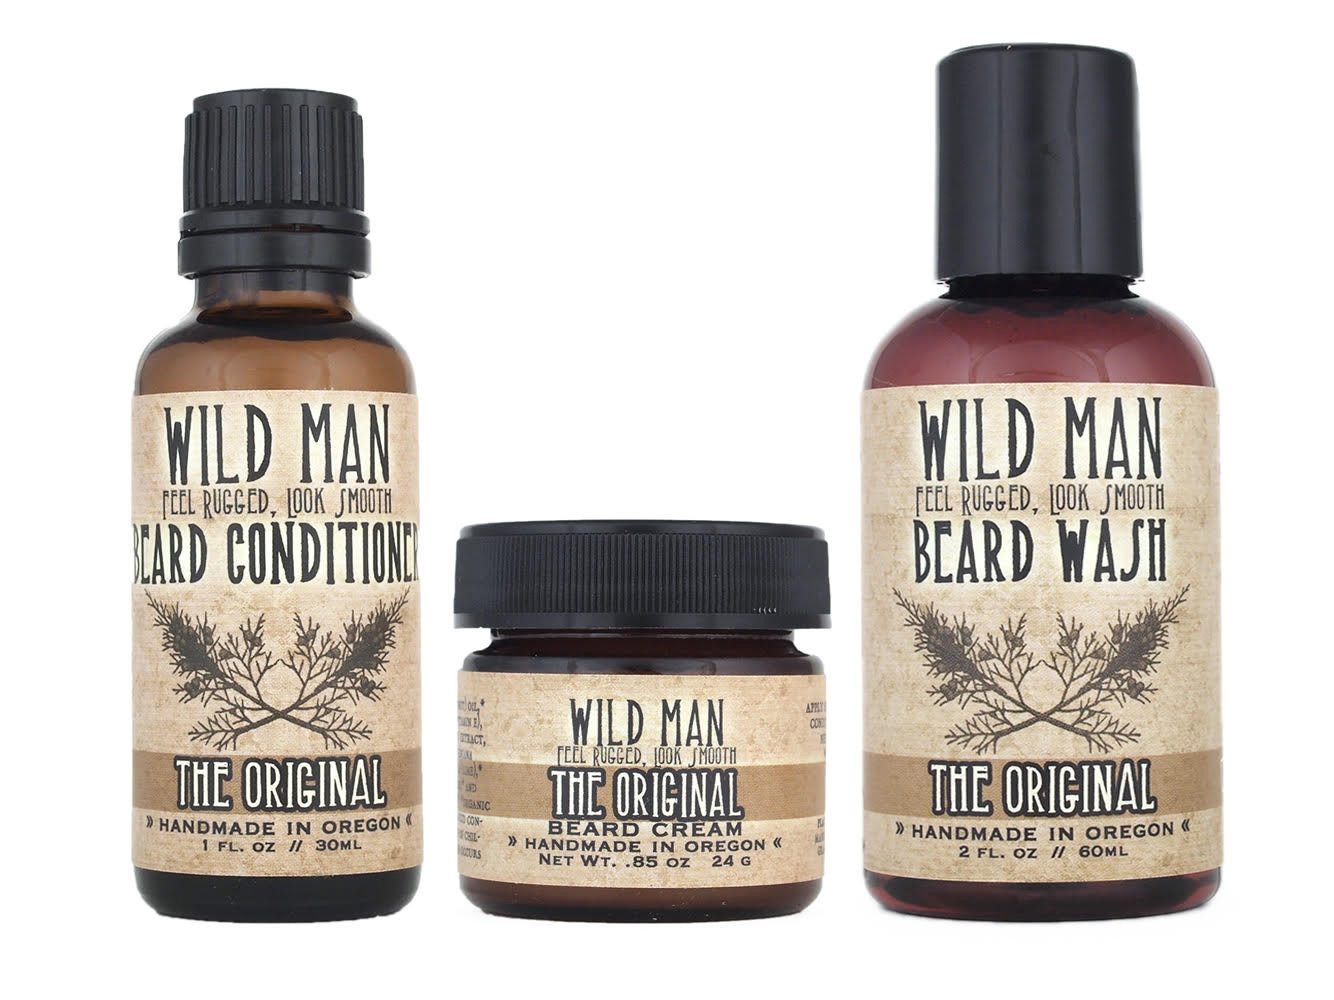 """Wild Rose, an Oregon-based company, has packed its """"Wild Man"""" beard"""" conditioner, beard wash and be"""